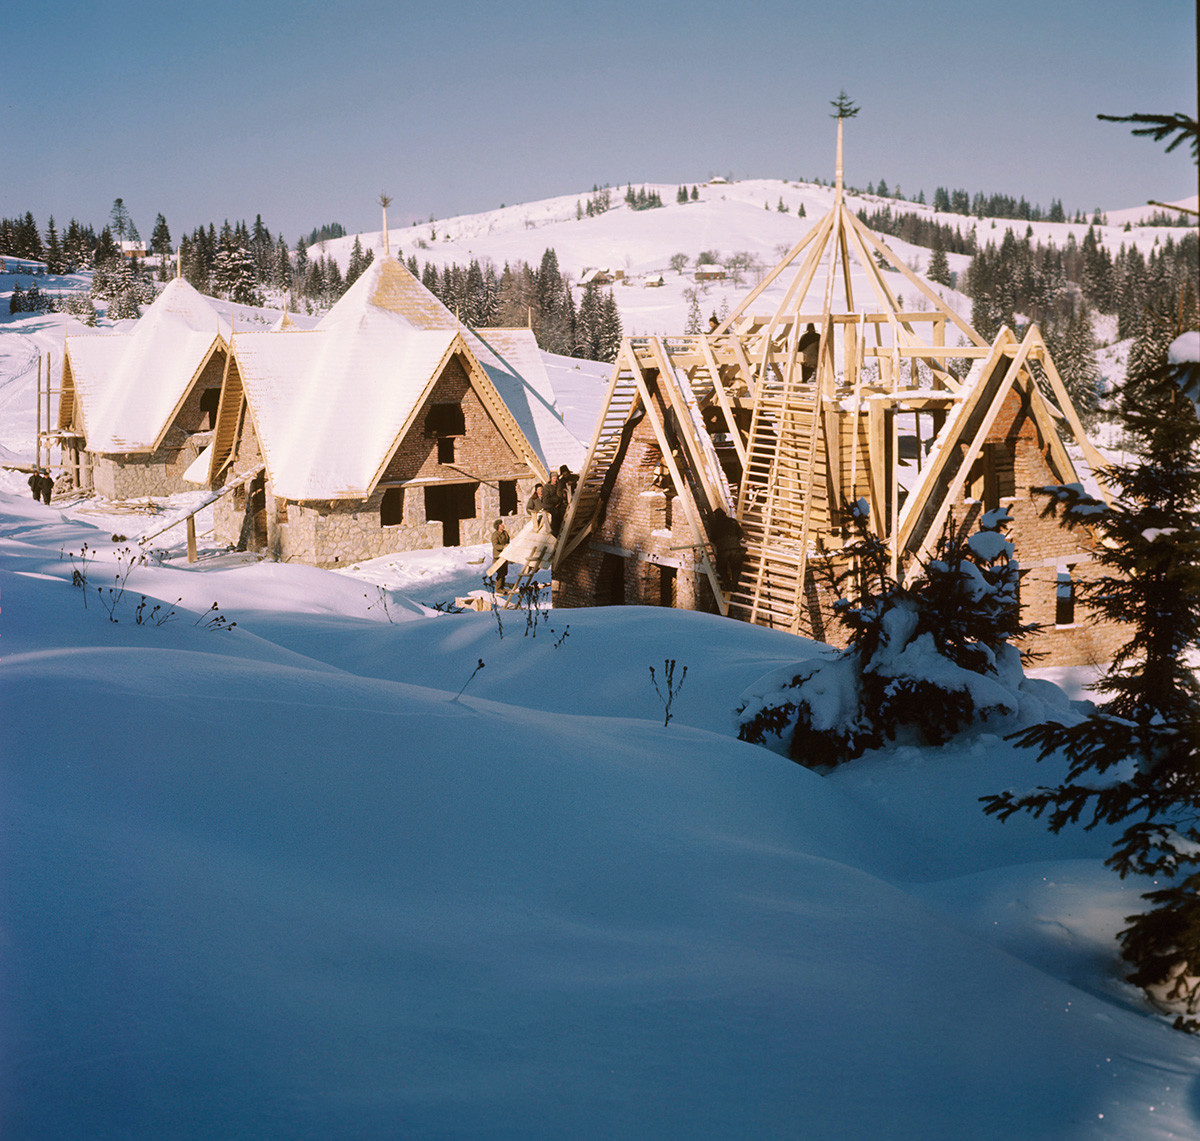 Building cottages for tourists in the Carpathian Mountains, Ivano-Frankivsk Region, 1970